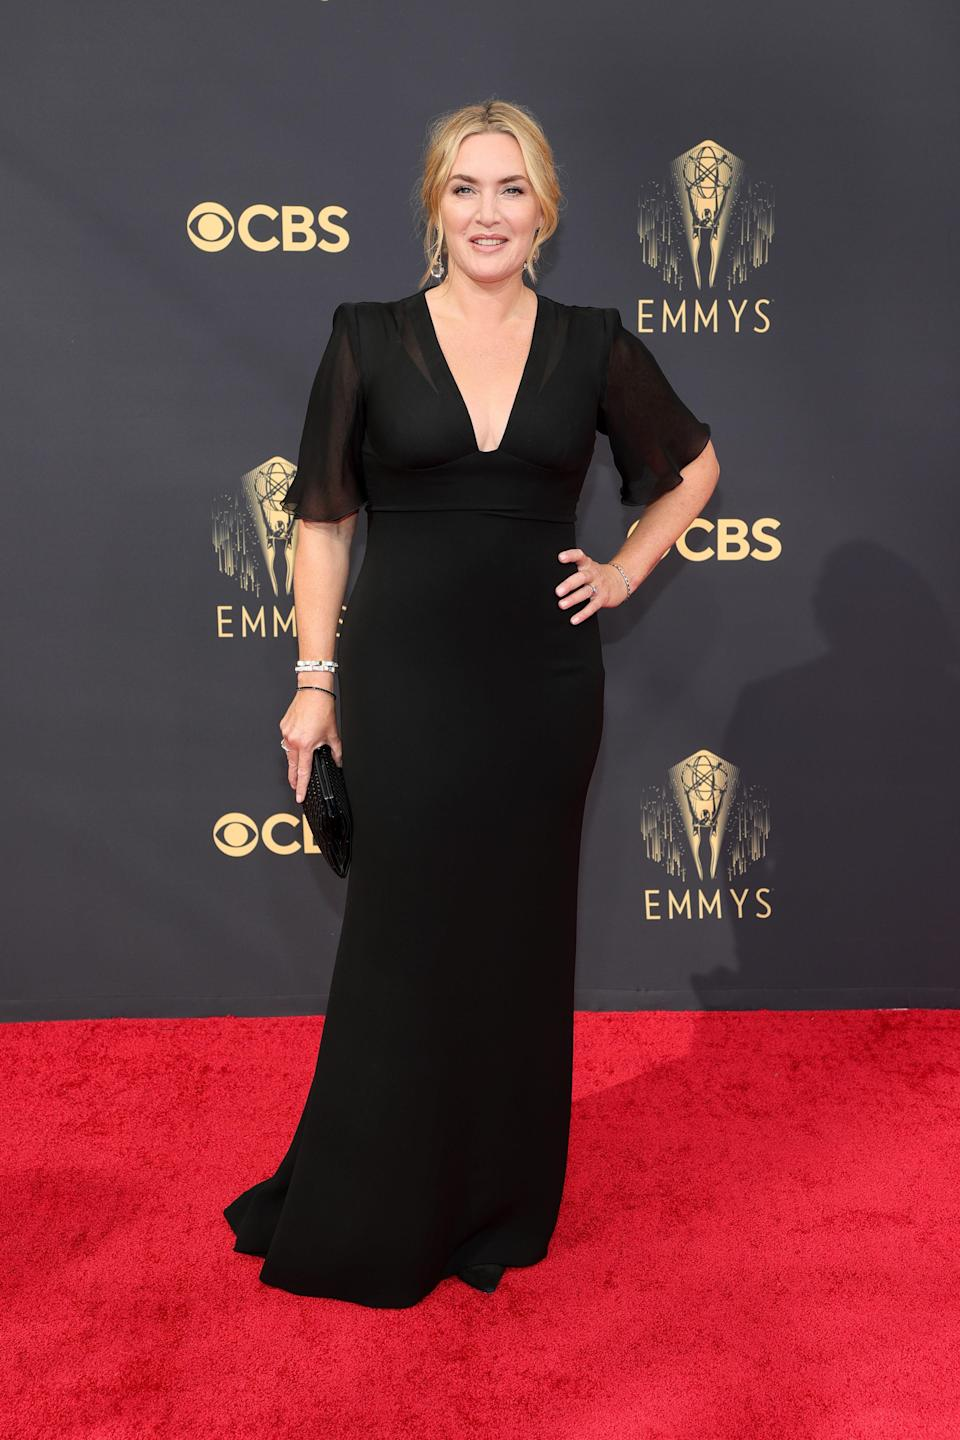 The iconic actor looked classic in her black Armani gown.